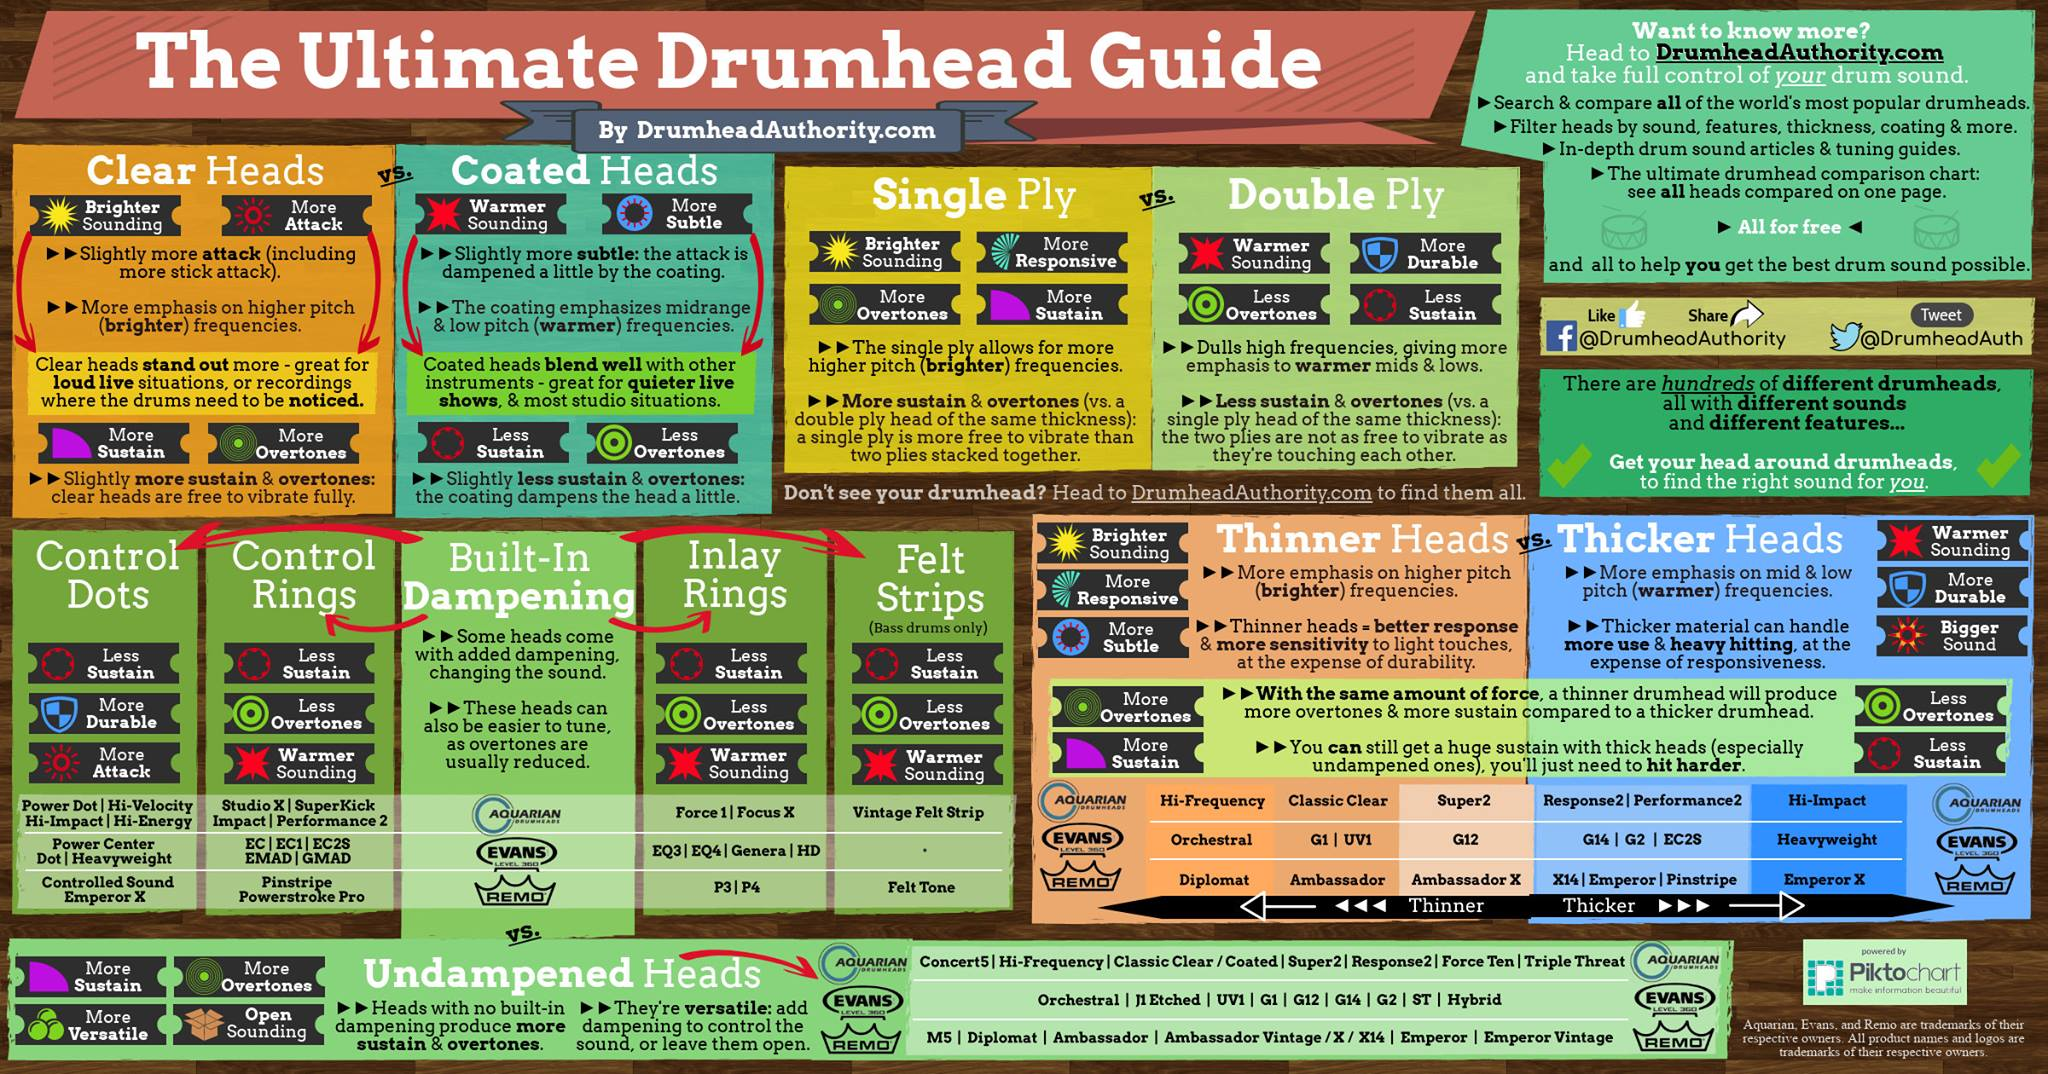 Choosing The Best Drumhead: The Ultimate Drumhead Guide